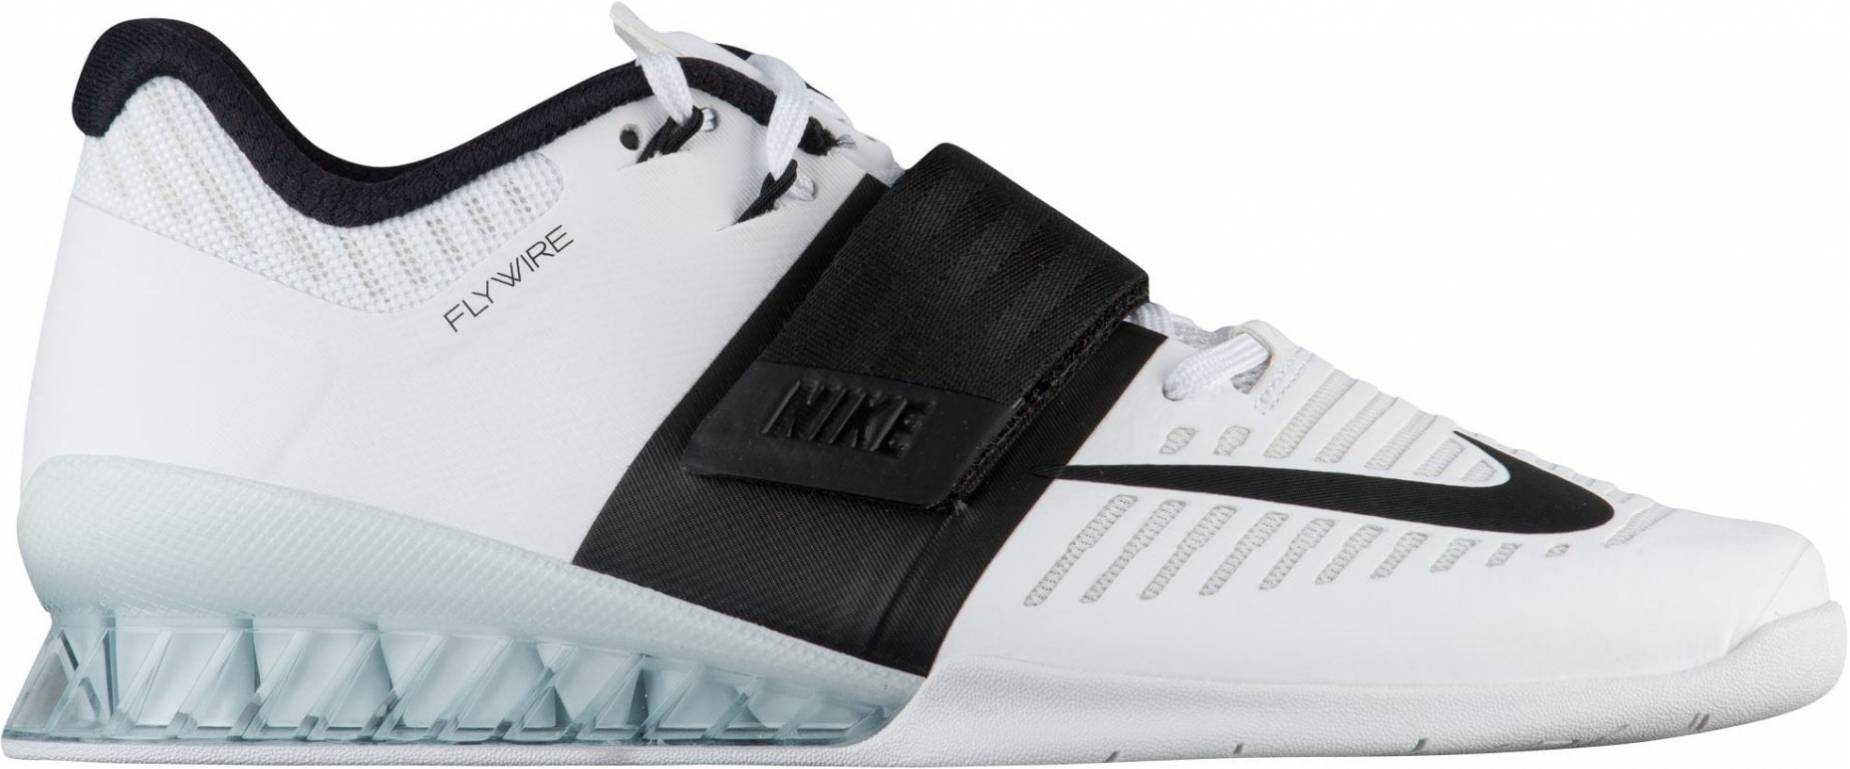 Save 62% on Weightlifting Shoes (24